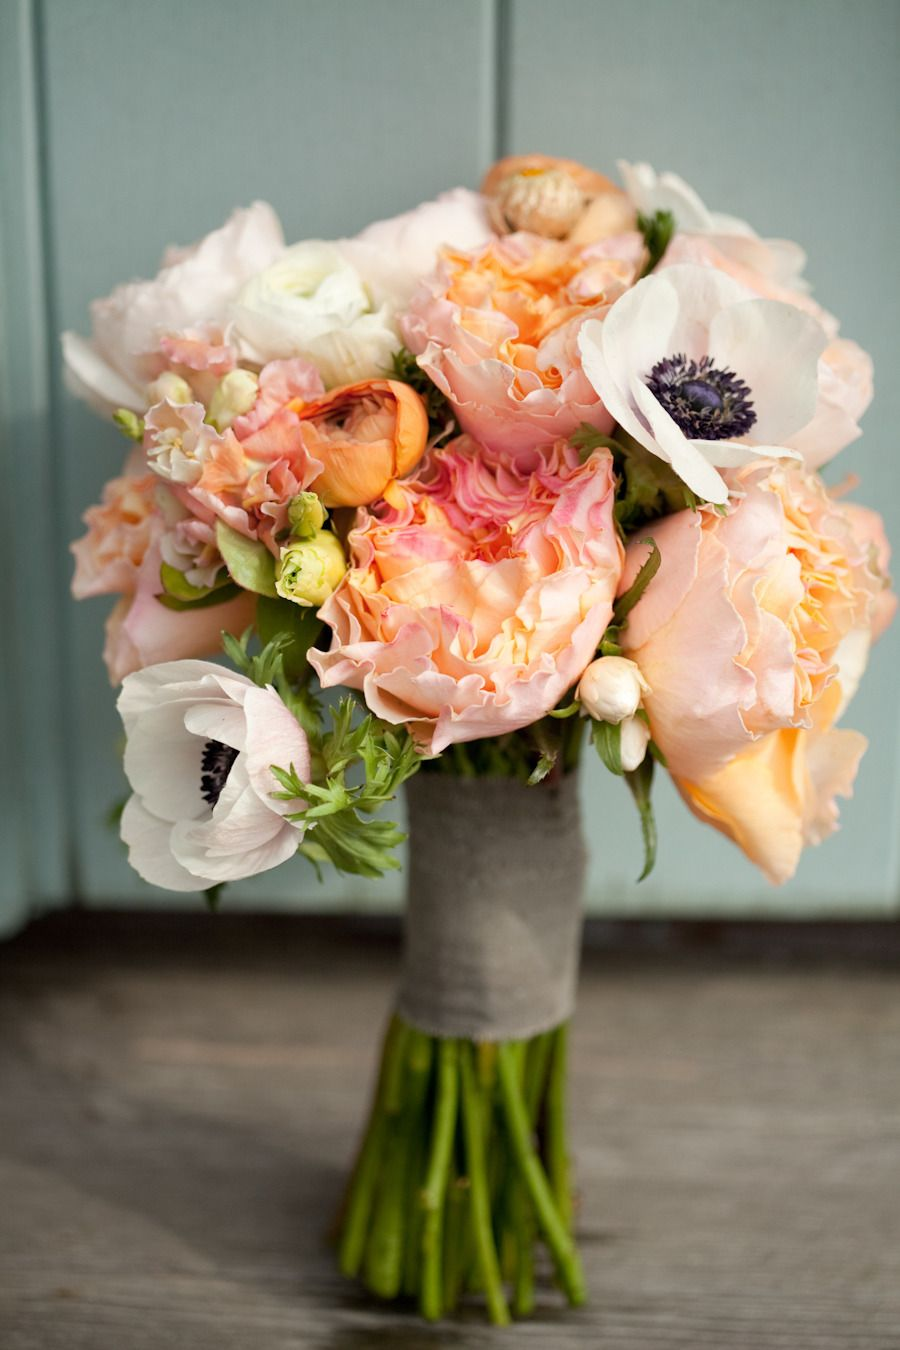 Marthas vineyard wedding from jocelyn filley photography anemone peach and coral anemones wedding bouquet photography jocelyn filley photography on izmirmasajfo